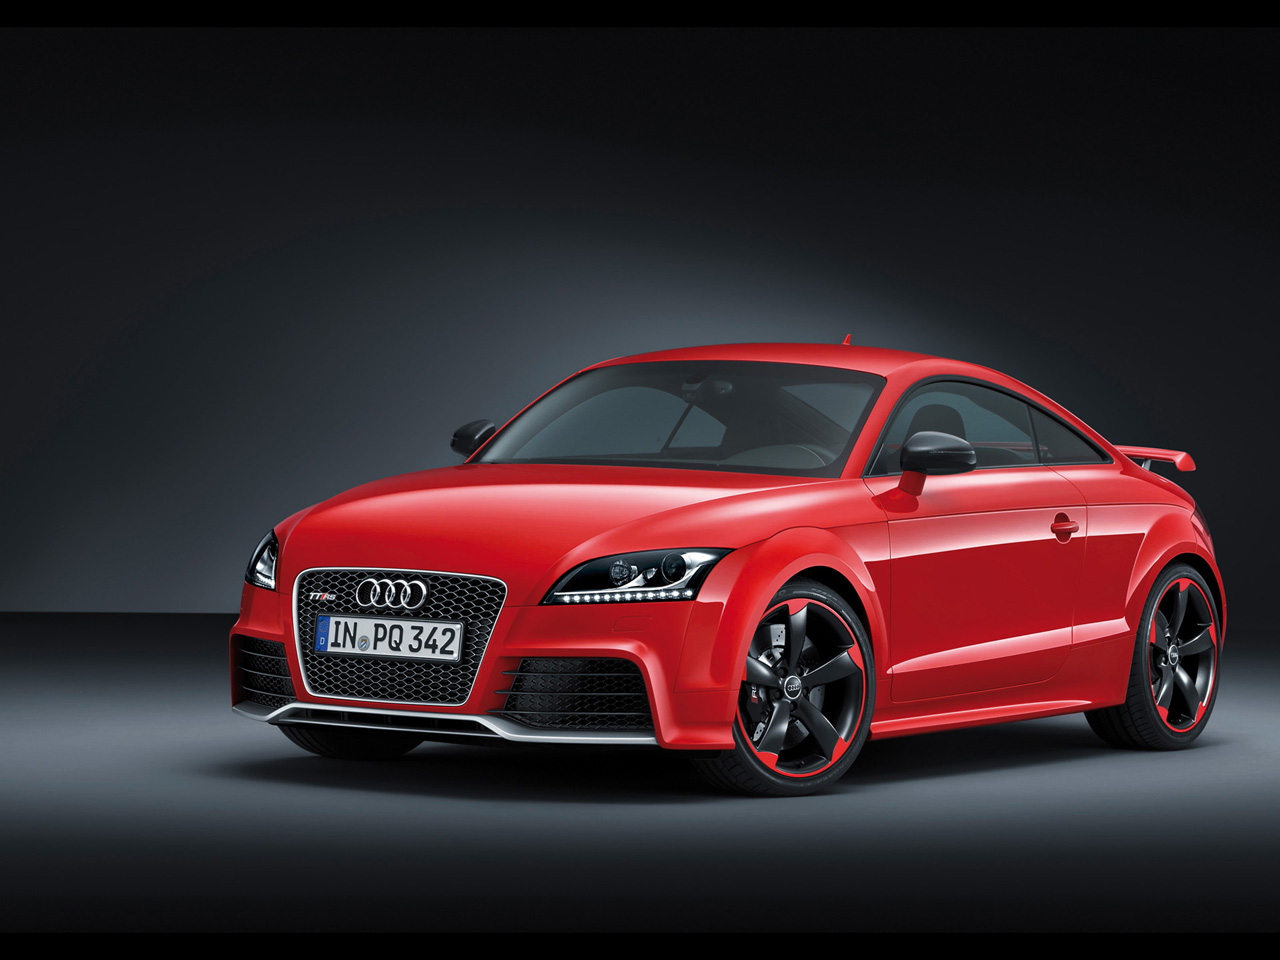 2012 Audi TT RS plus Front And Side Audi TT RS Plus